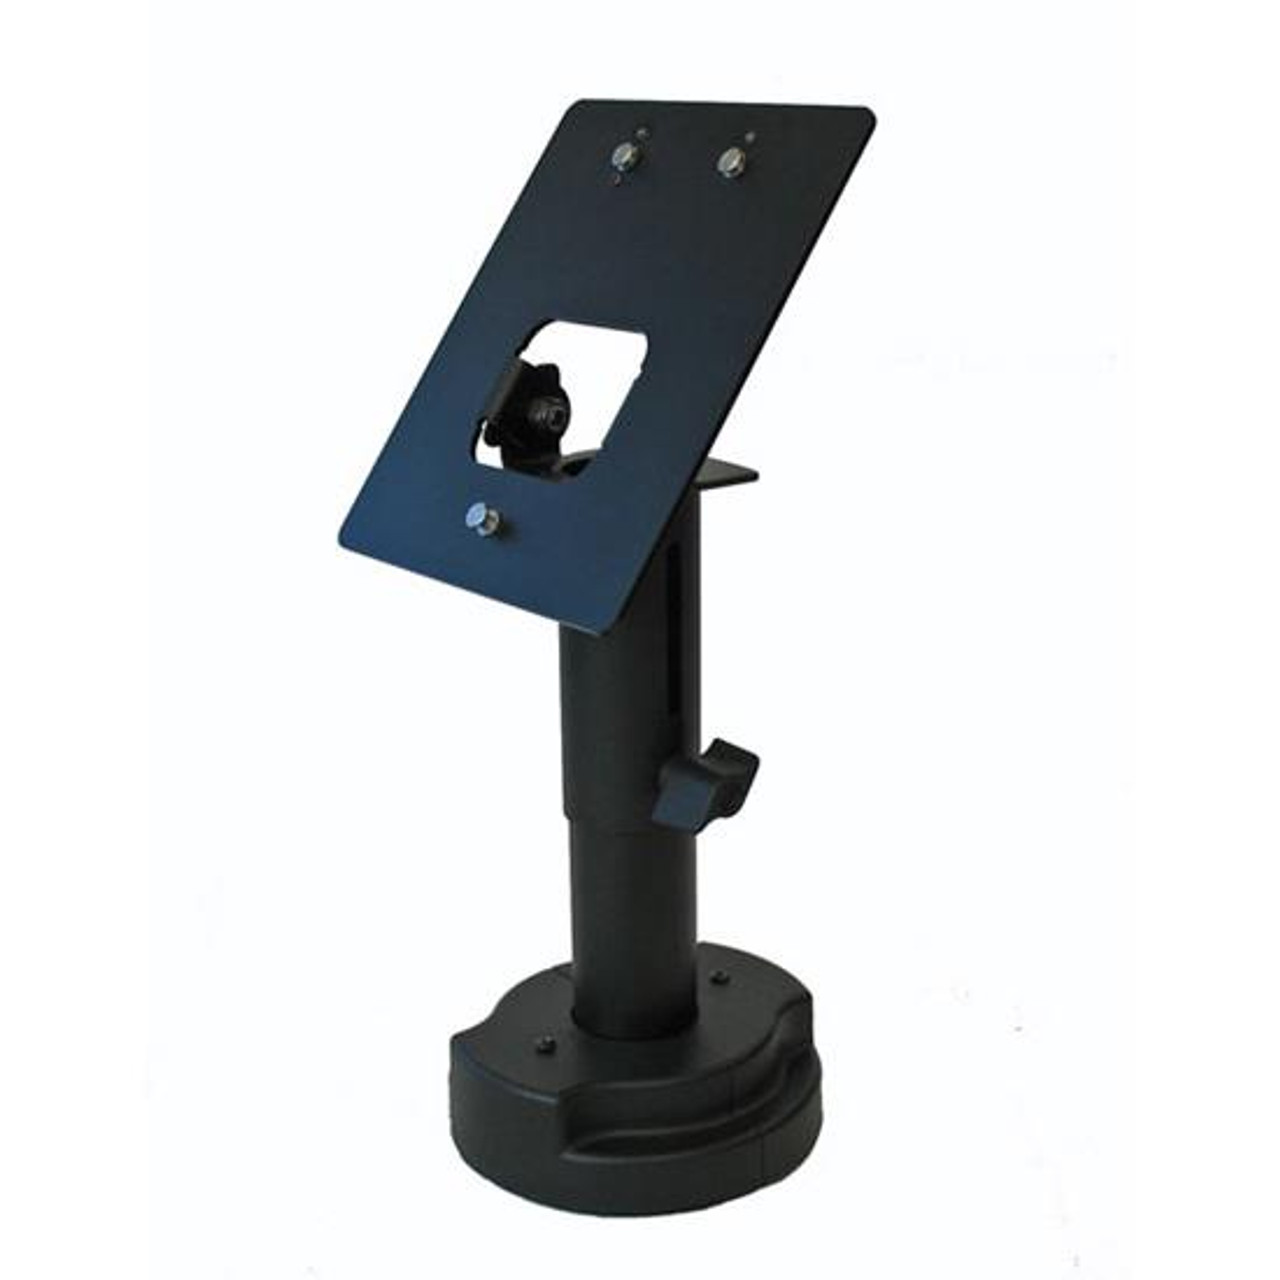 Hypercom L4200 Credit Card Stand Telescoping Pedestal by Swivel Stands